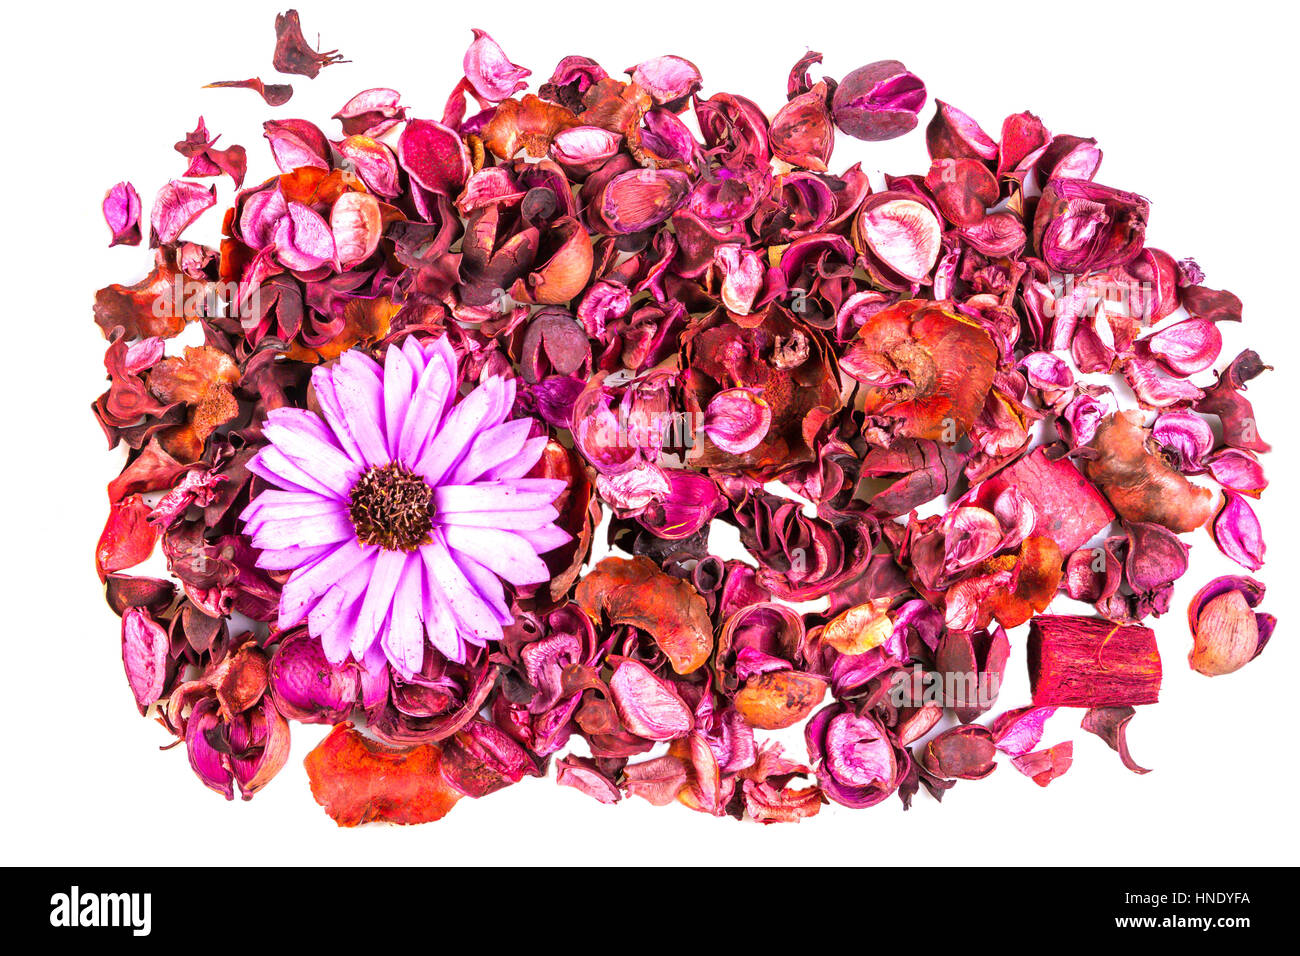 Dry flowers and leaves on white background. Top view, flat lay. - Stock Image